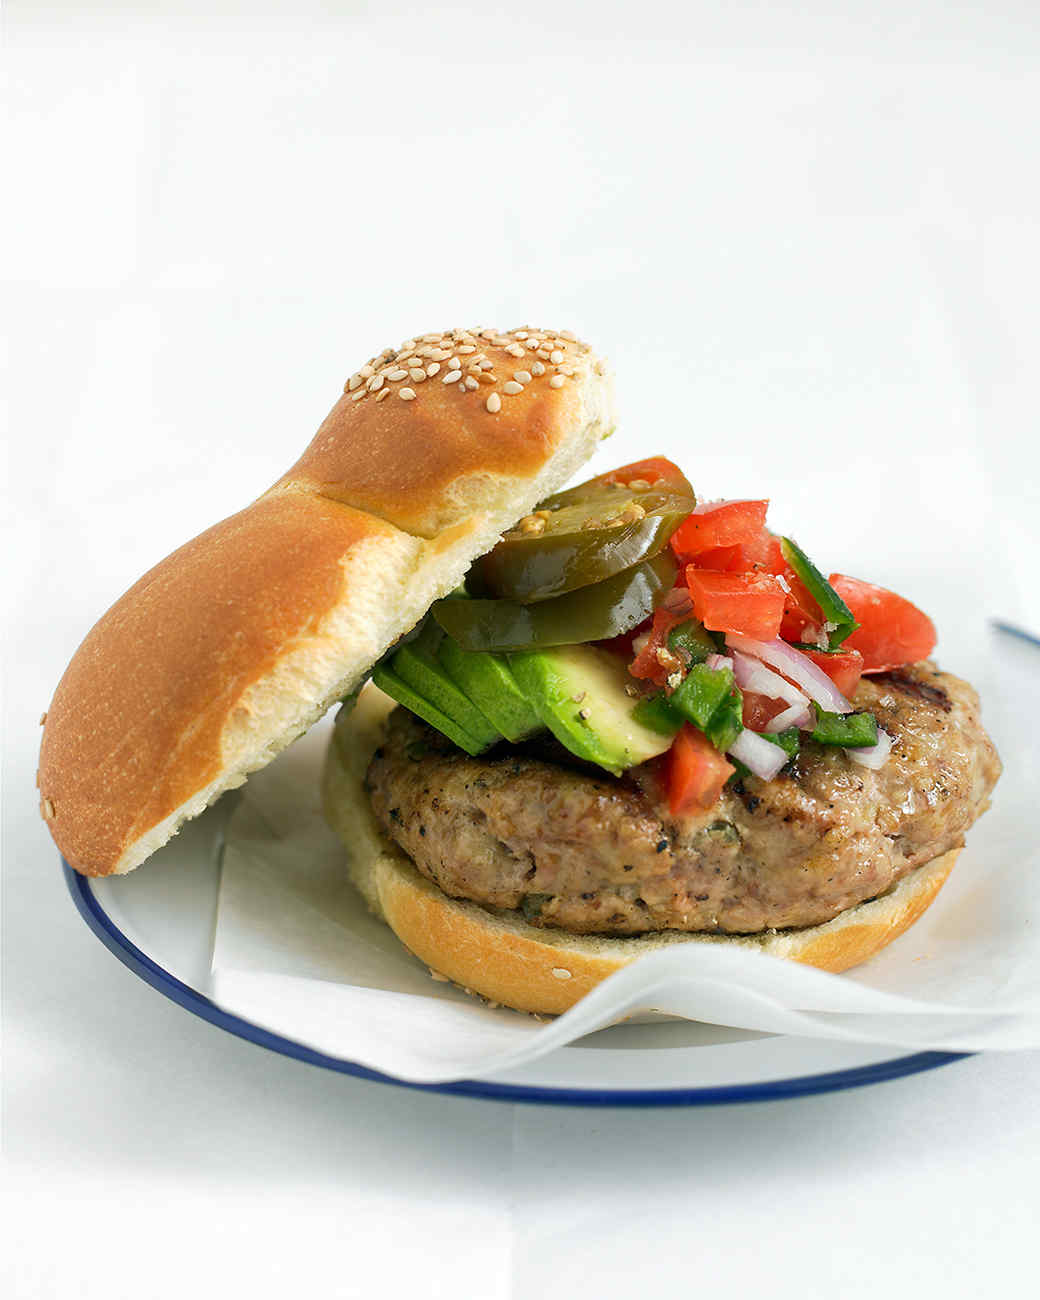 edf_jul06_burger_turkey.jpg